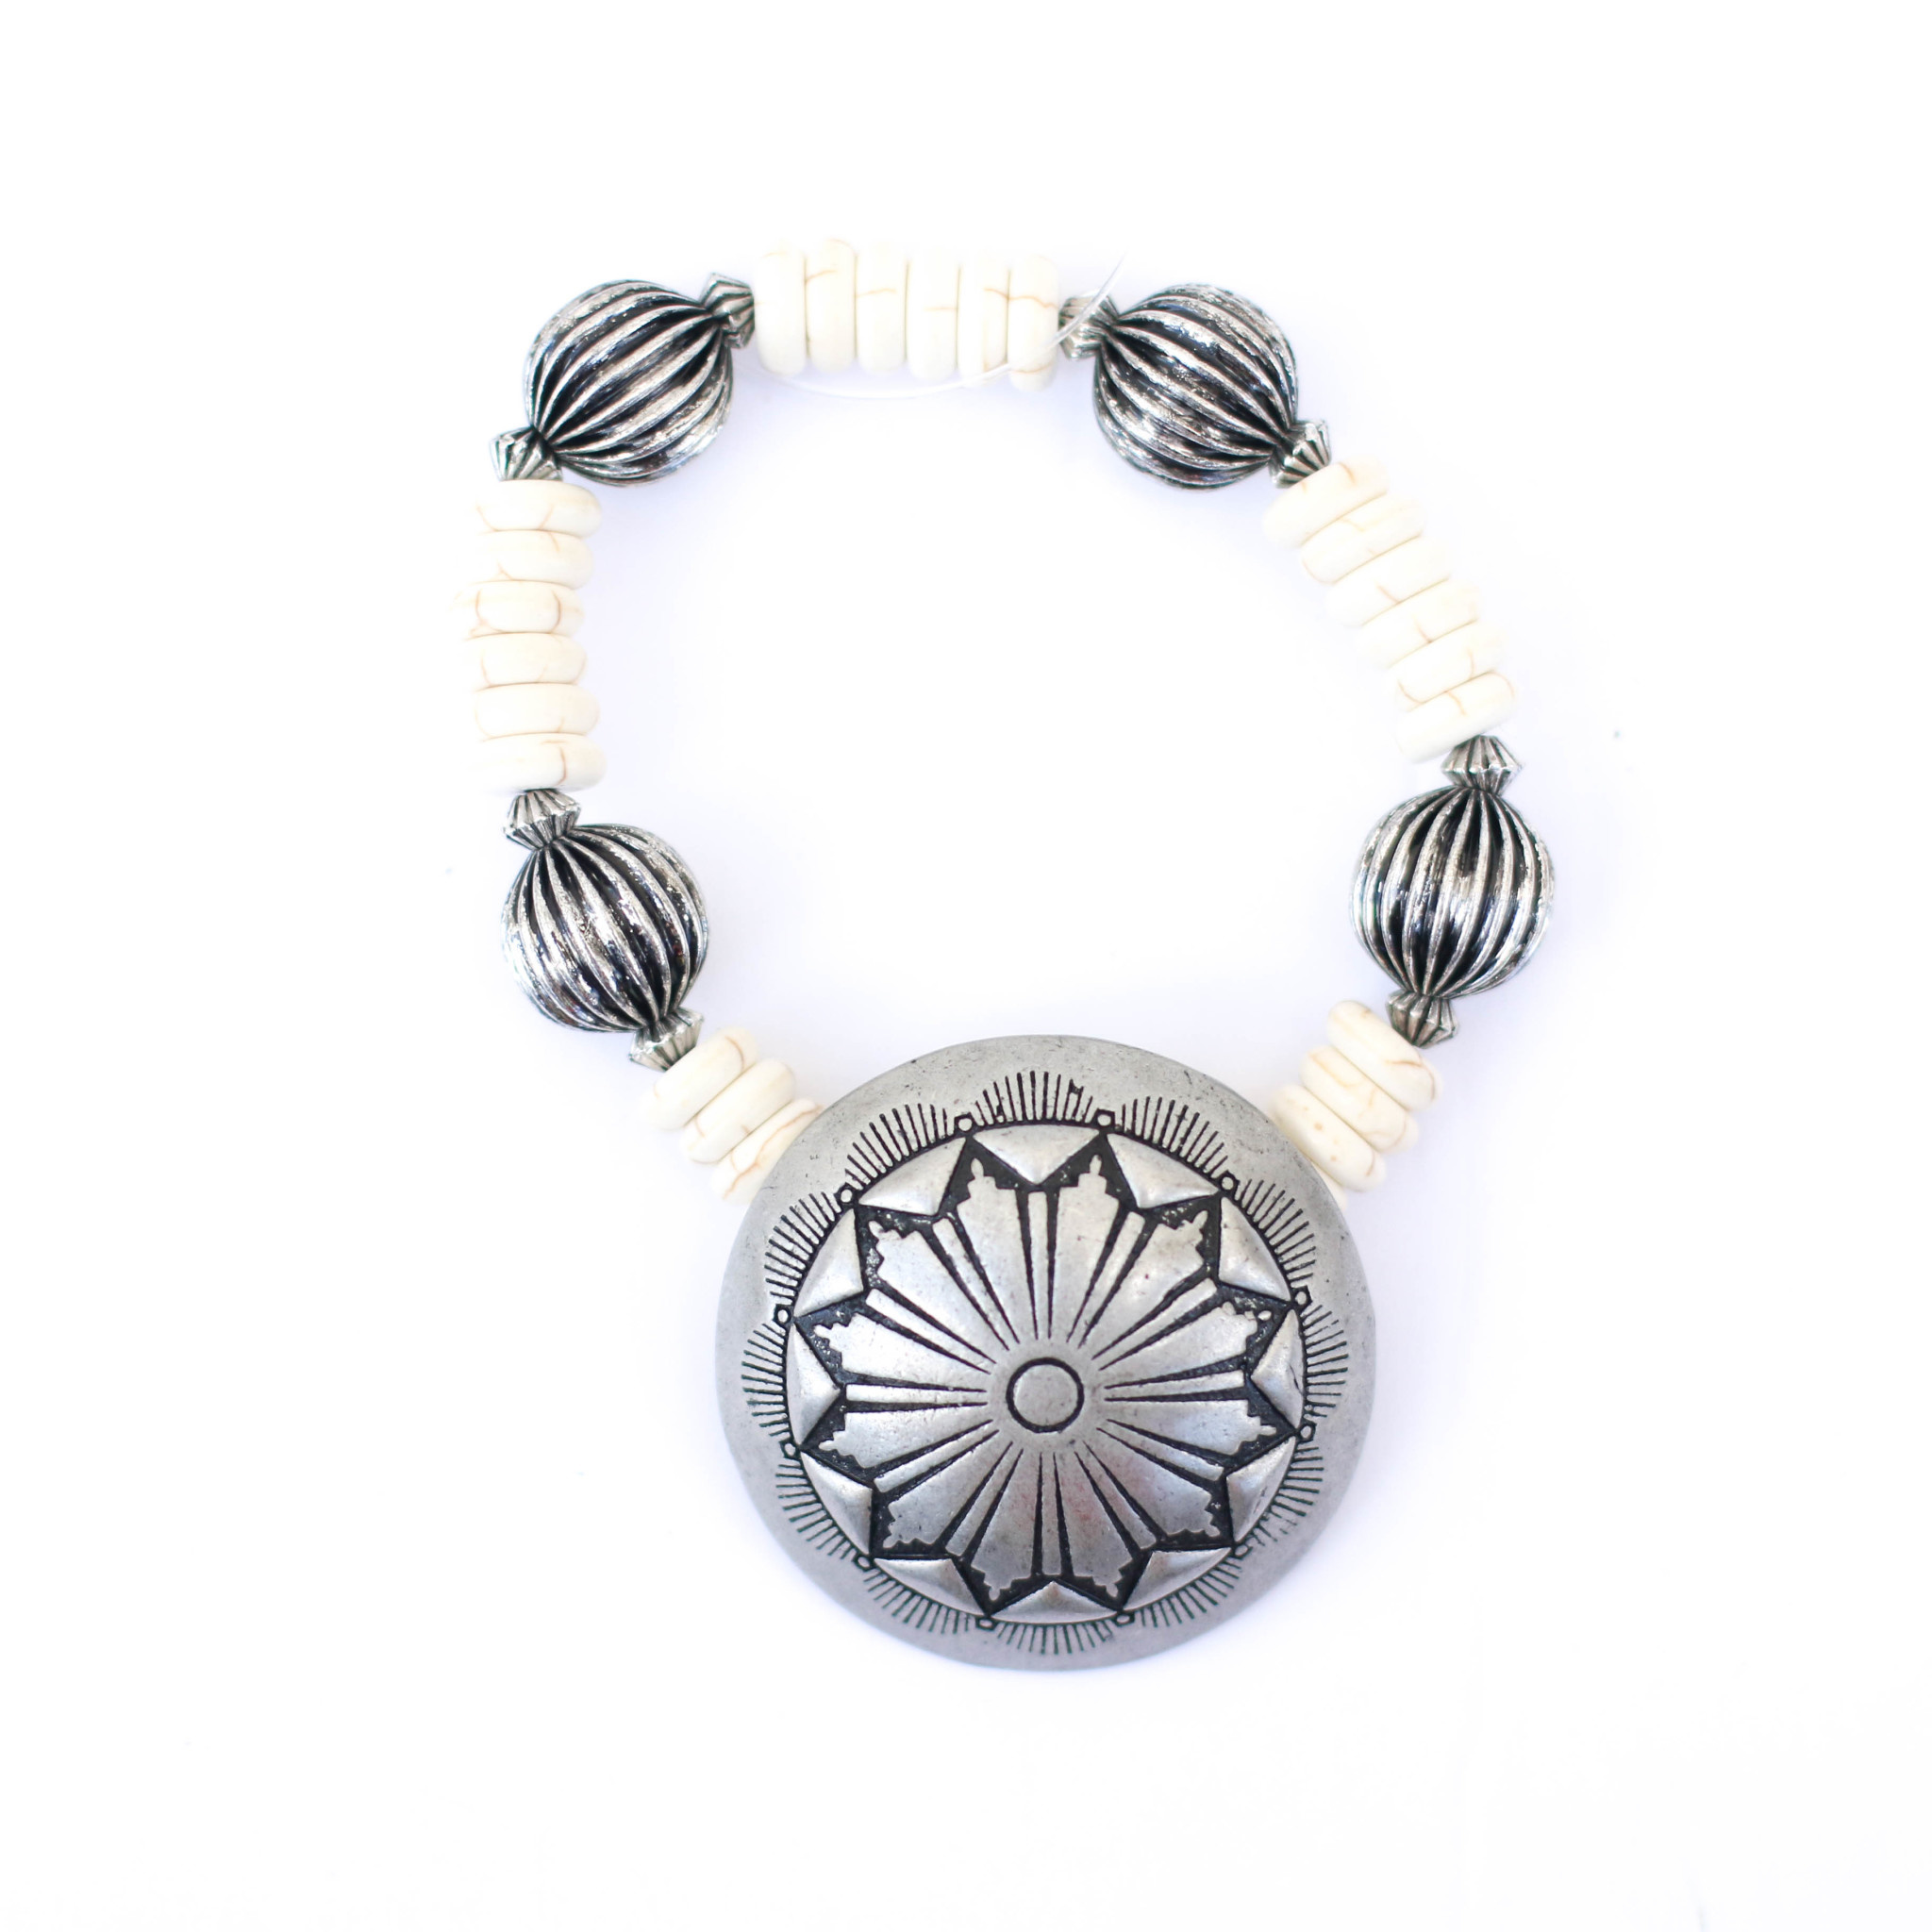 Punchy's Ivory and Silver Melon Bead Stretch Bracelet with Concho